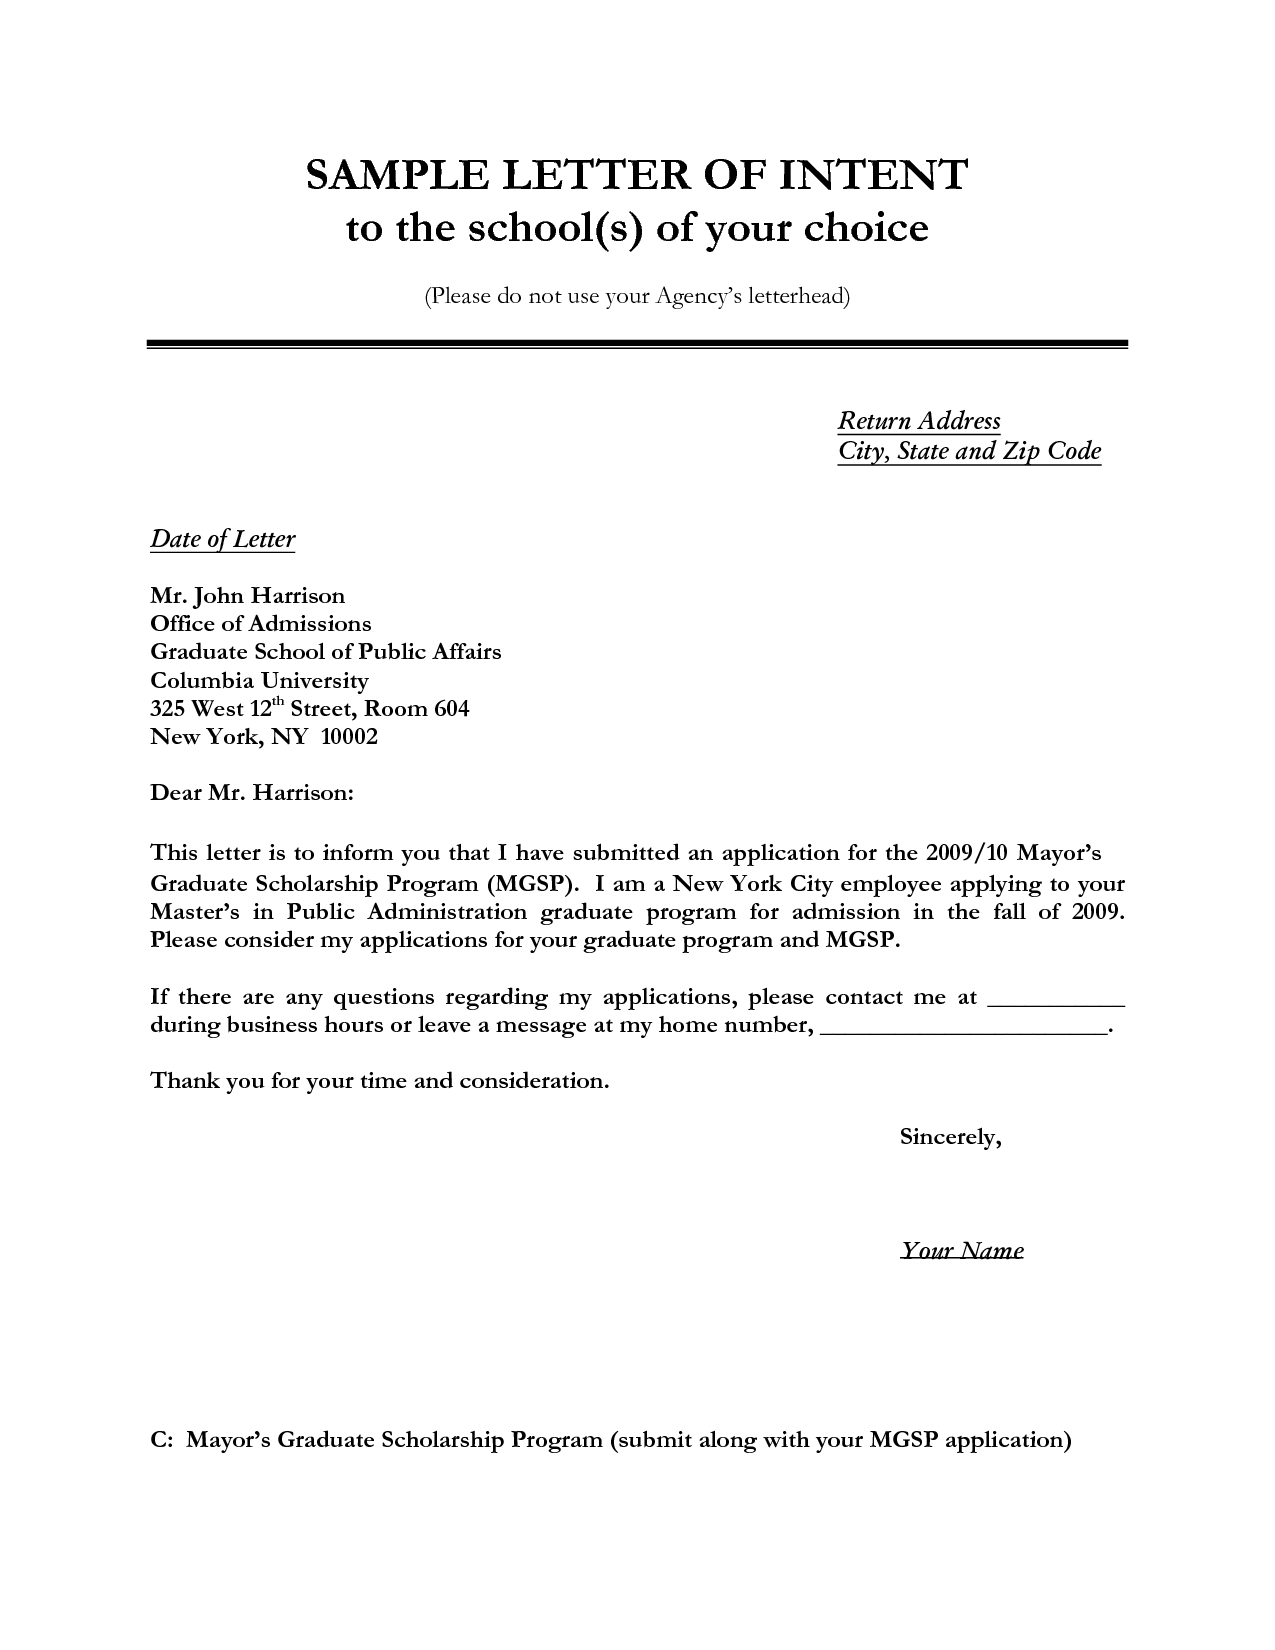 Free Printable Business Letter Template - Letter Of Intent Sample